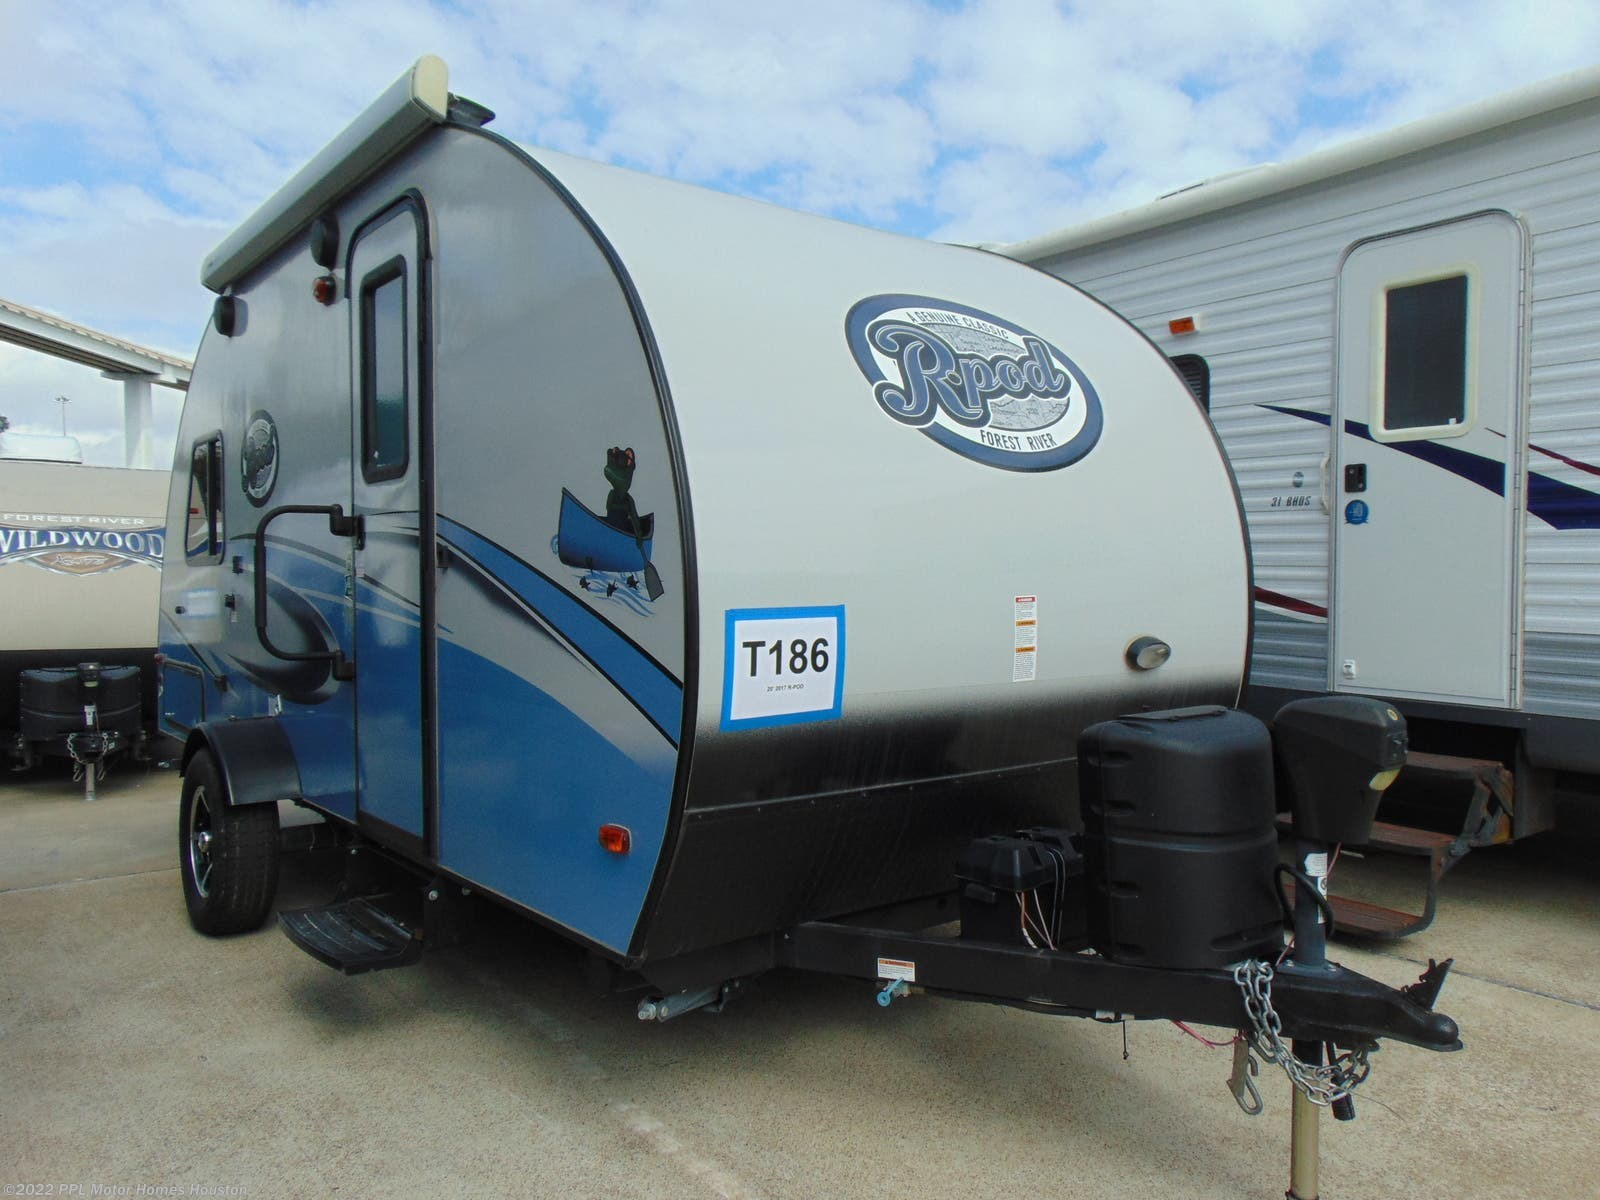 Used Rv Houston >> 2017 Forest River Rv R Pod Rpt176 For Sale In Houston Tx 77074 T186